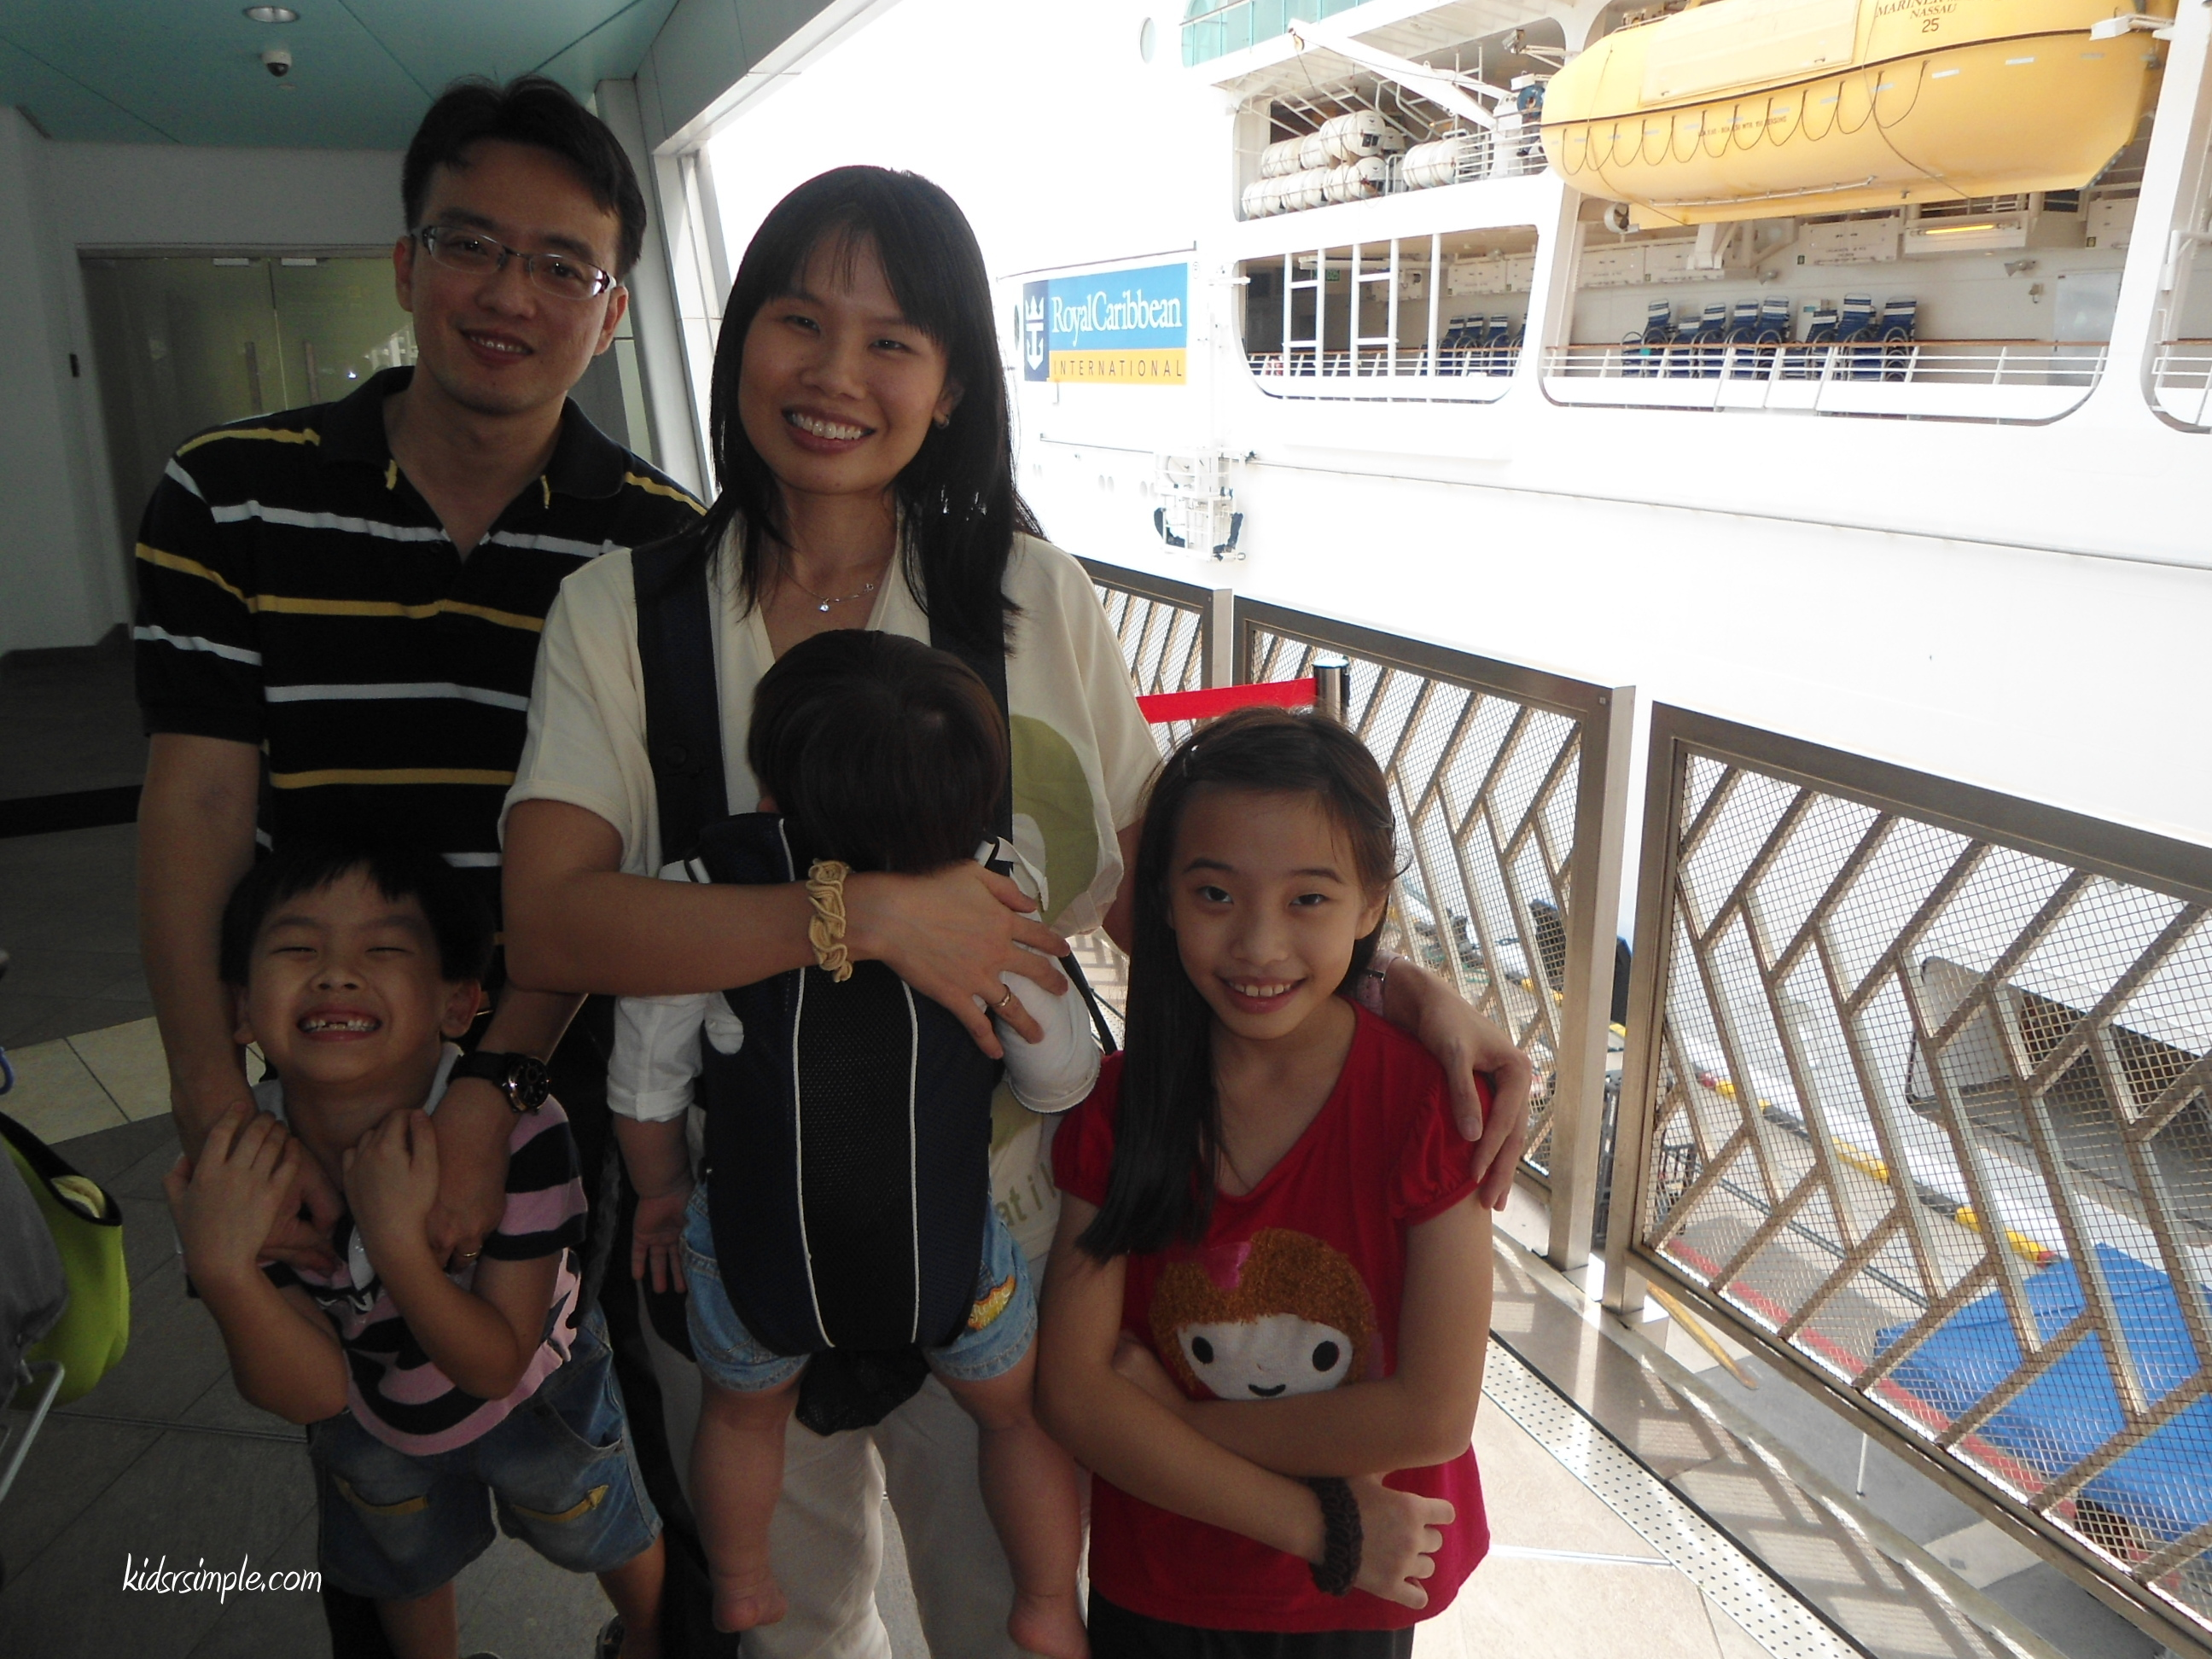 Our first family cruise – Mariner of the seas (Royal Caribbean)